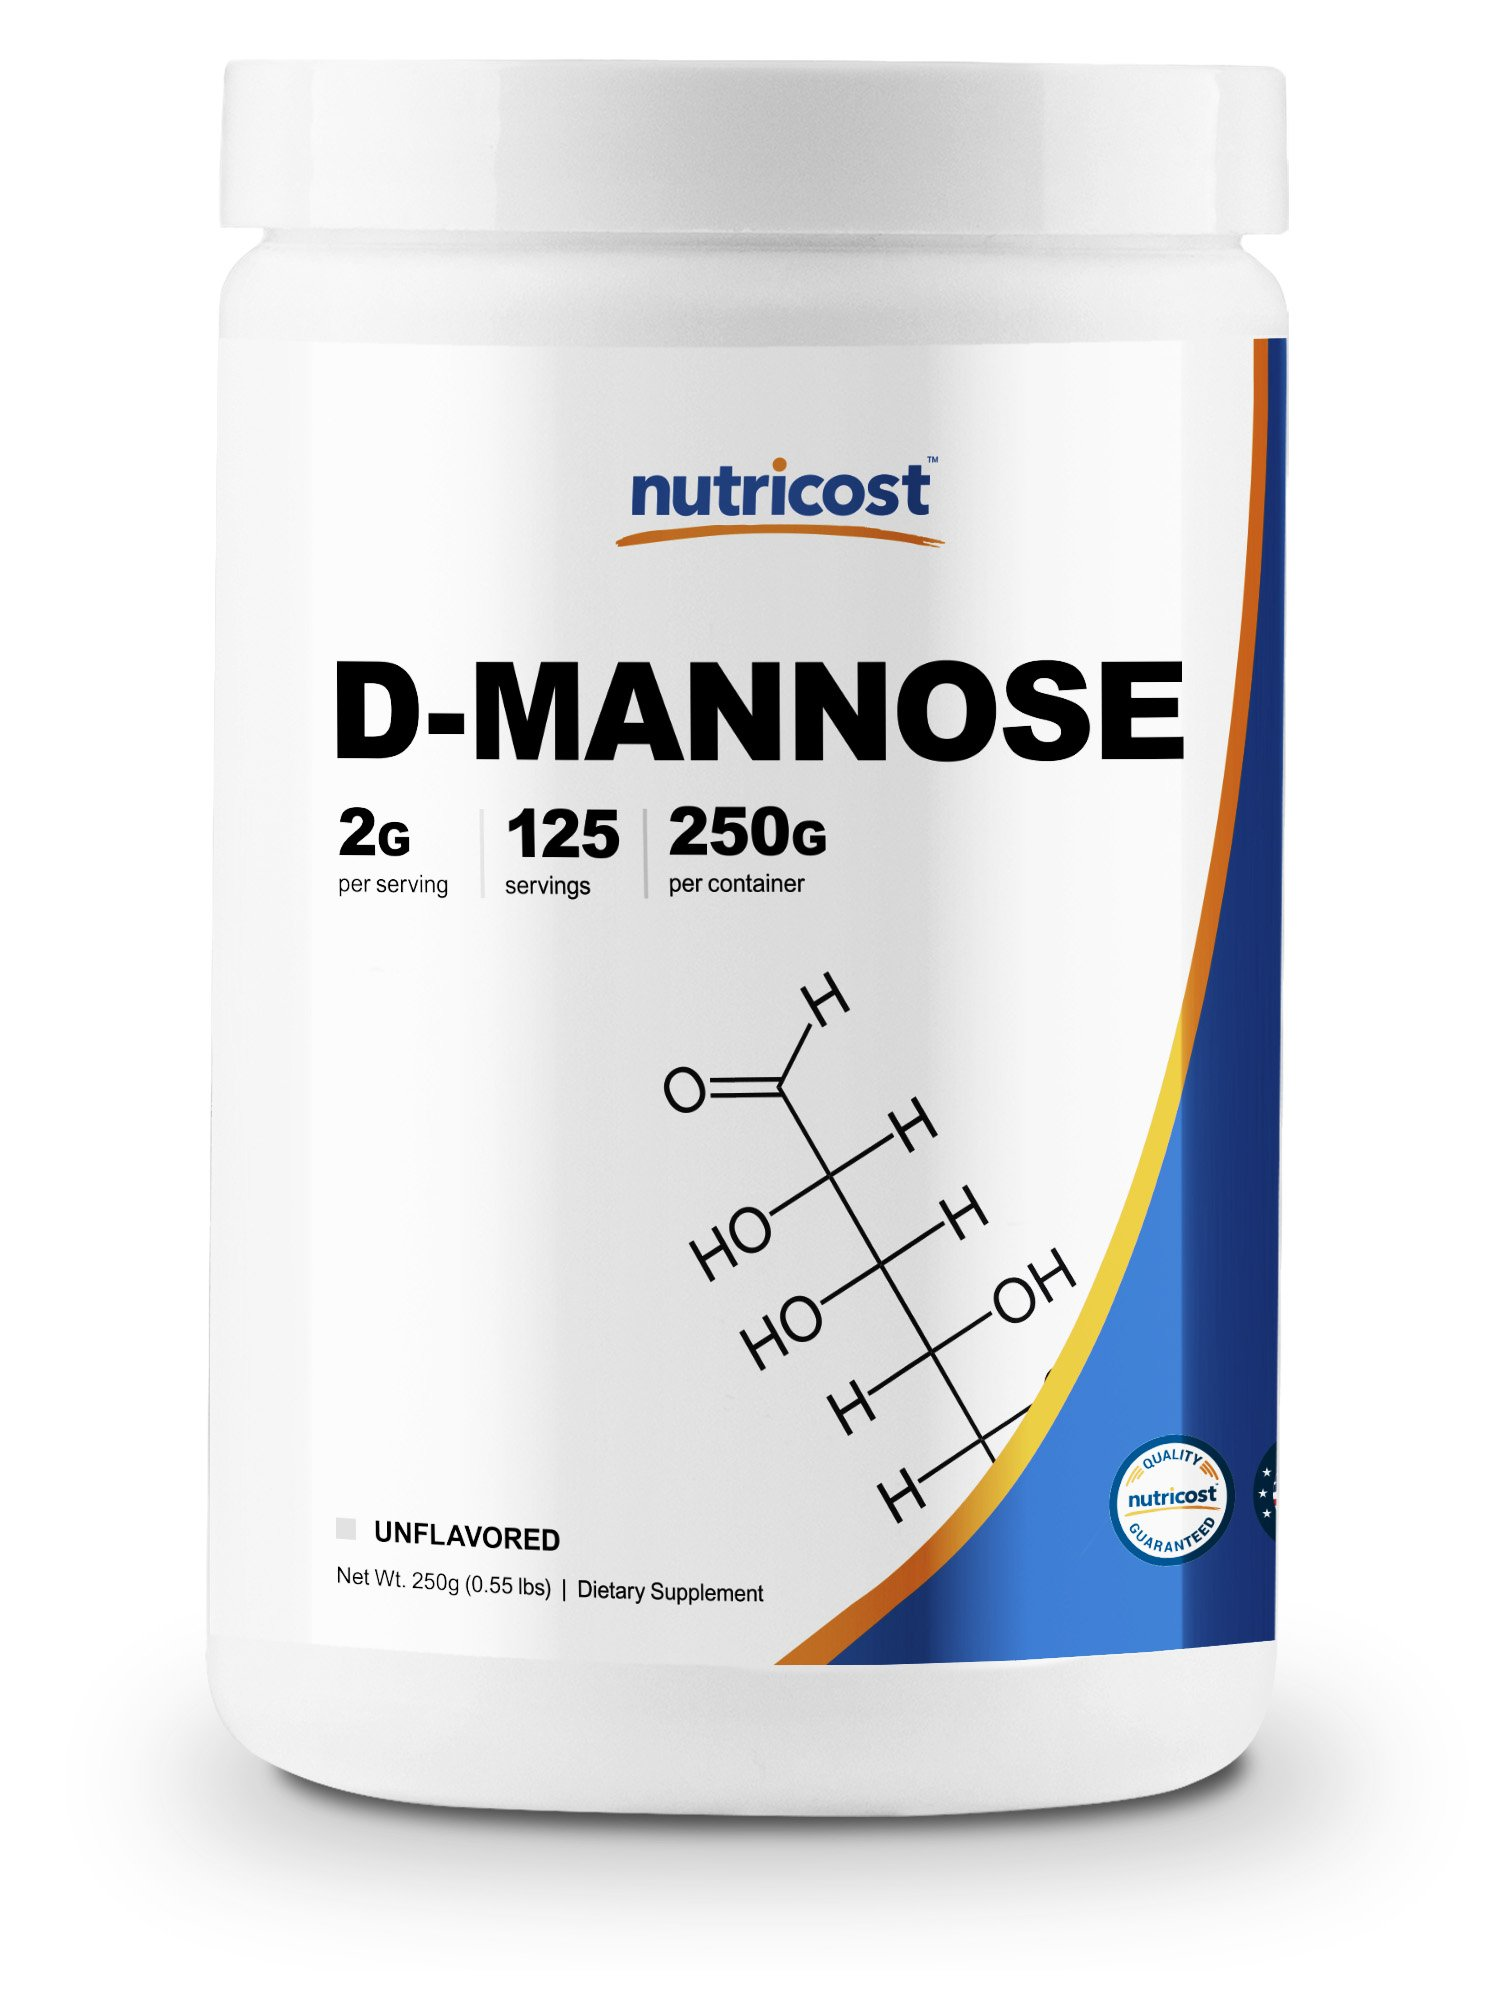 Nutricost D-Mannose Powder 250 GMS, 2g Serving, Non-GMO, Gluten Free by Nutricost